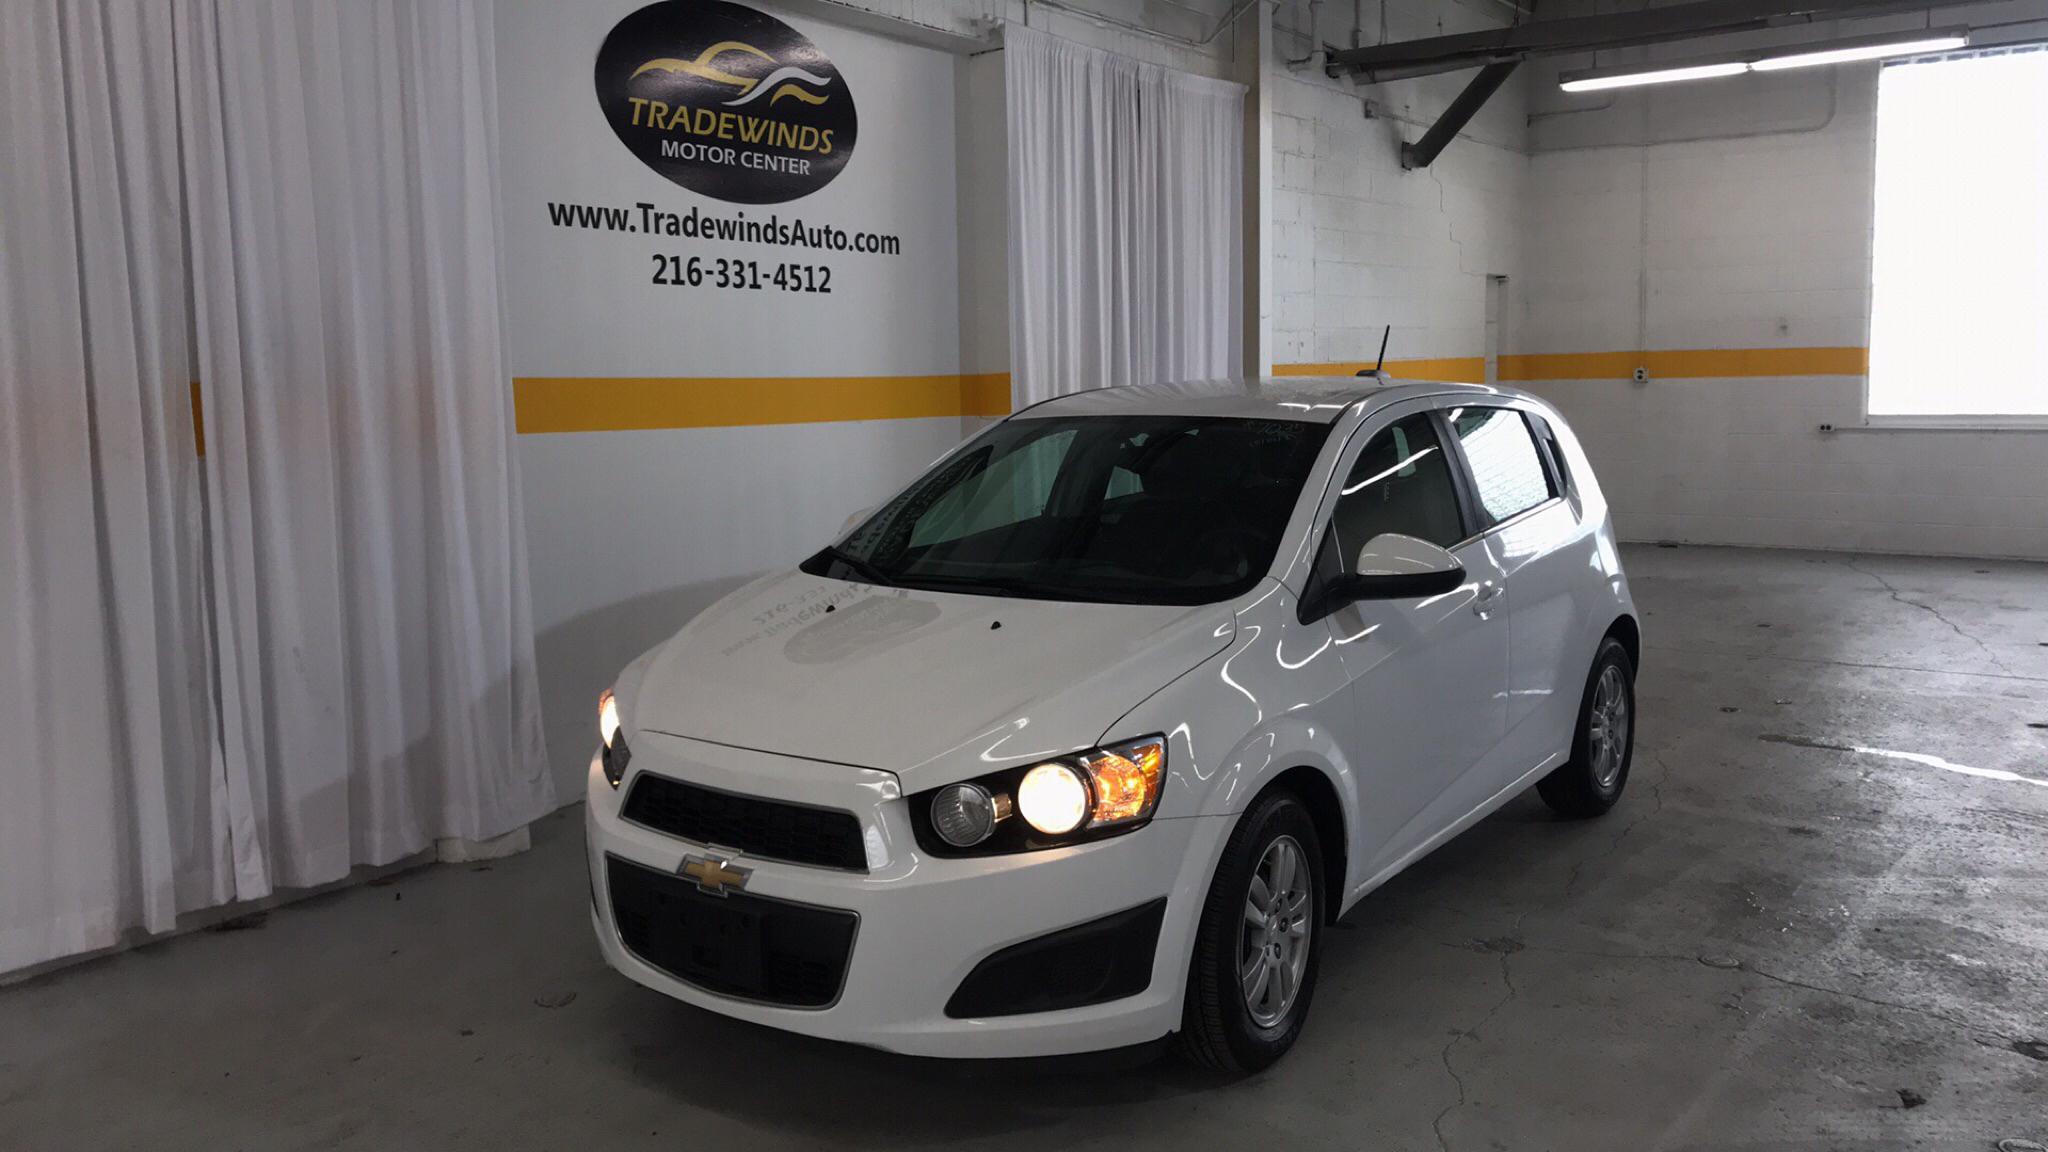 2015 CHEVROLET SONIC LT for sale at Tradewinds Motor Center